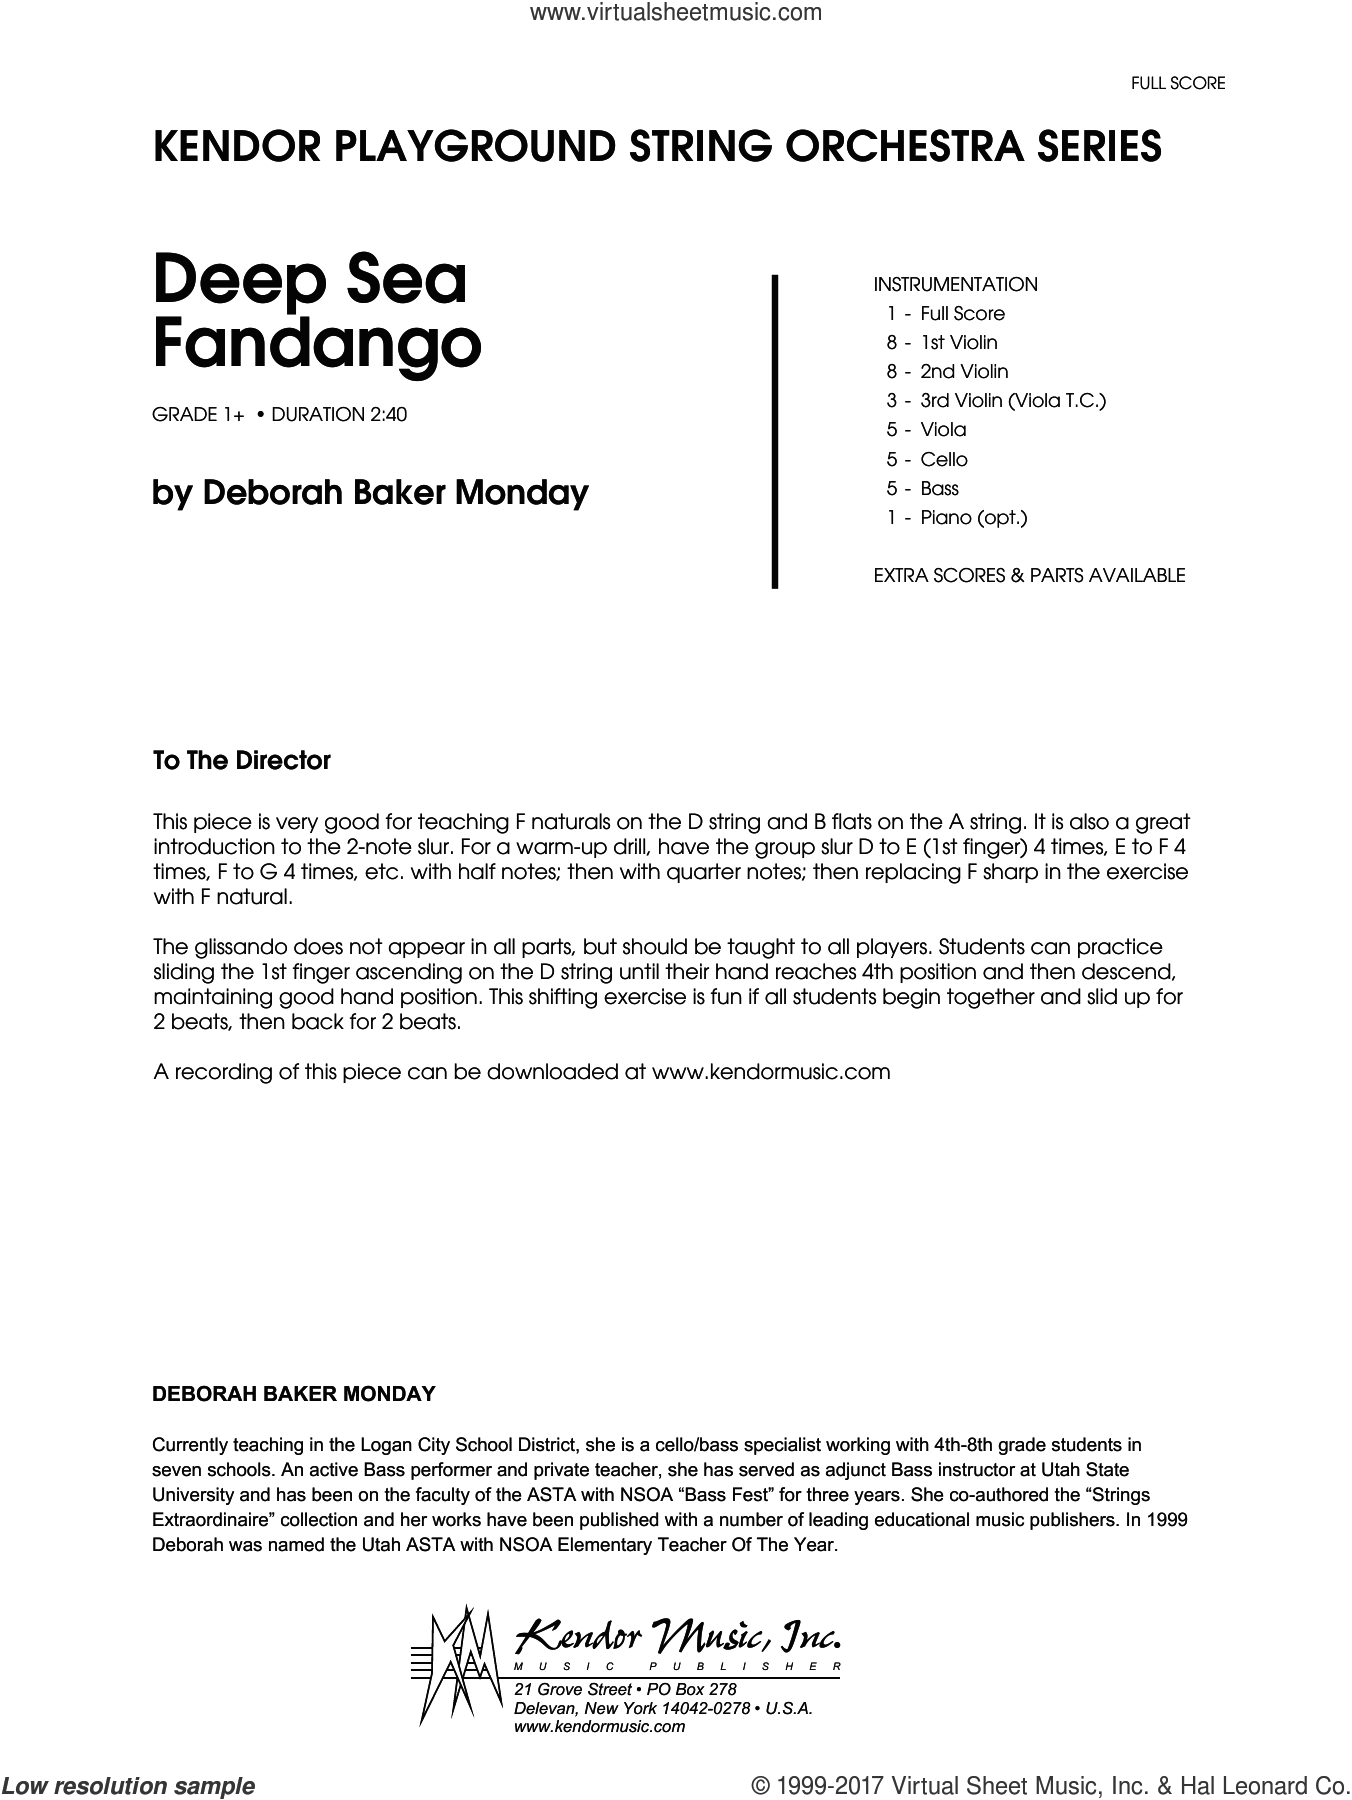 Deep Sea Fandango (COMPLETE) sheet music for orchestra by Deborah Baker Monday, intermediate skill level